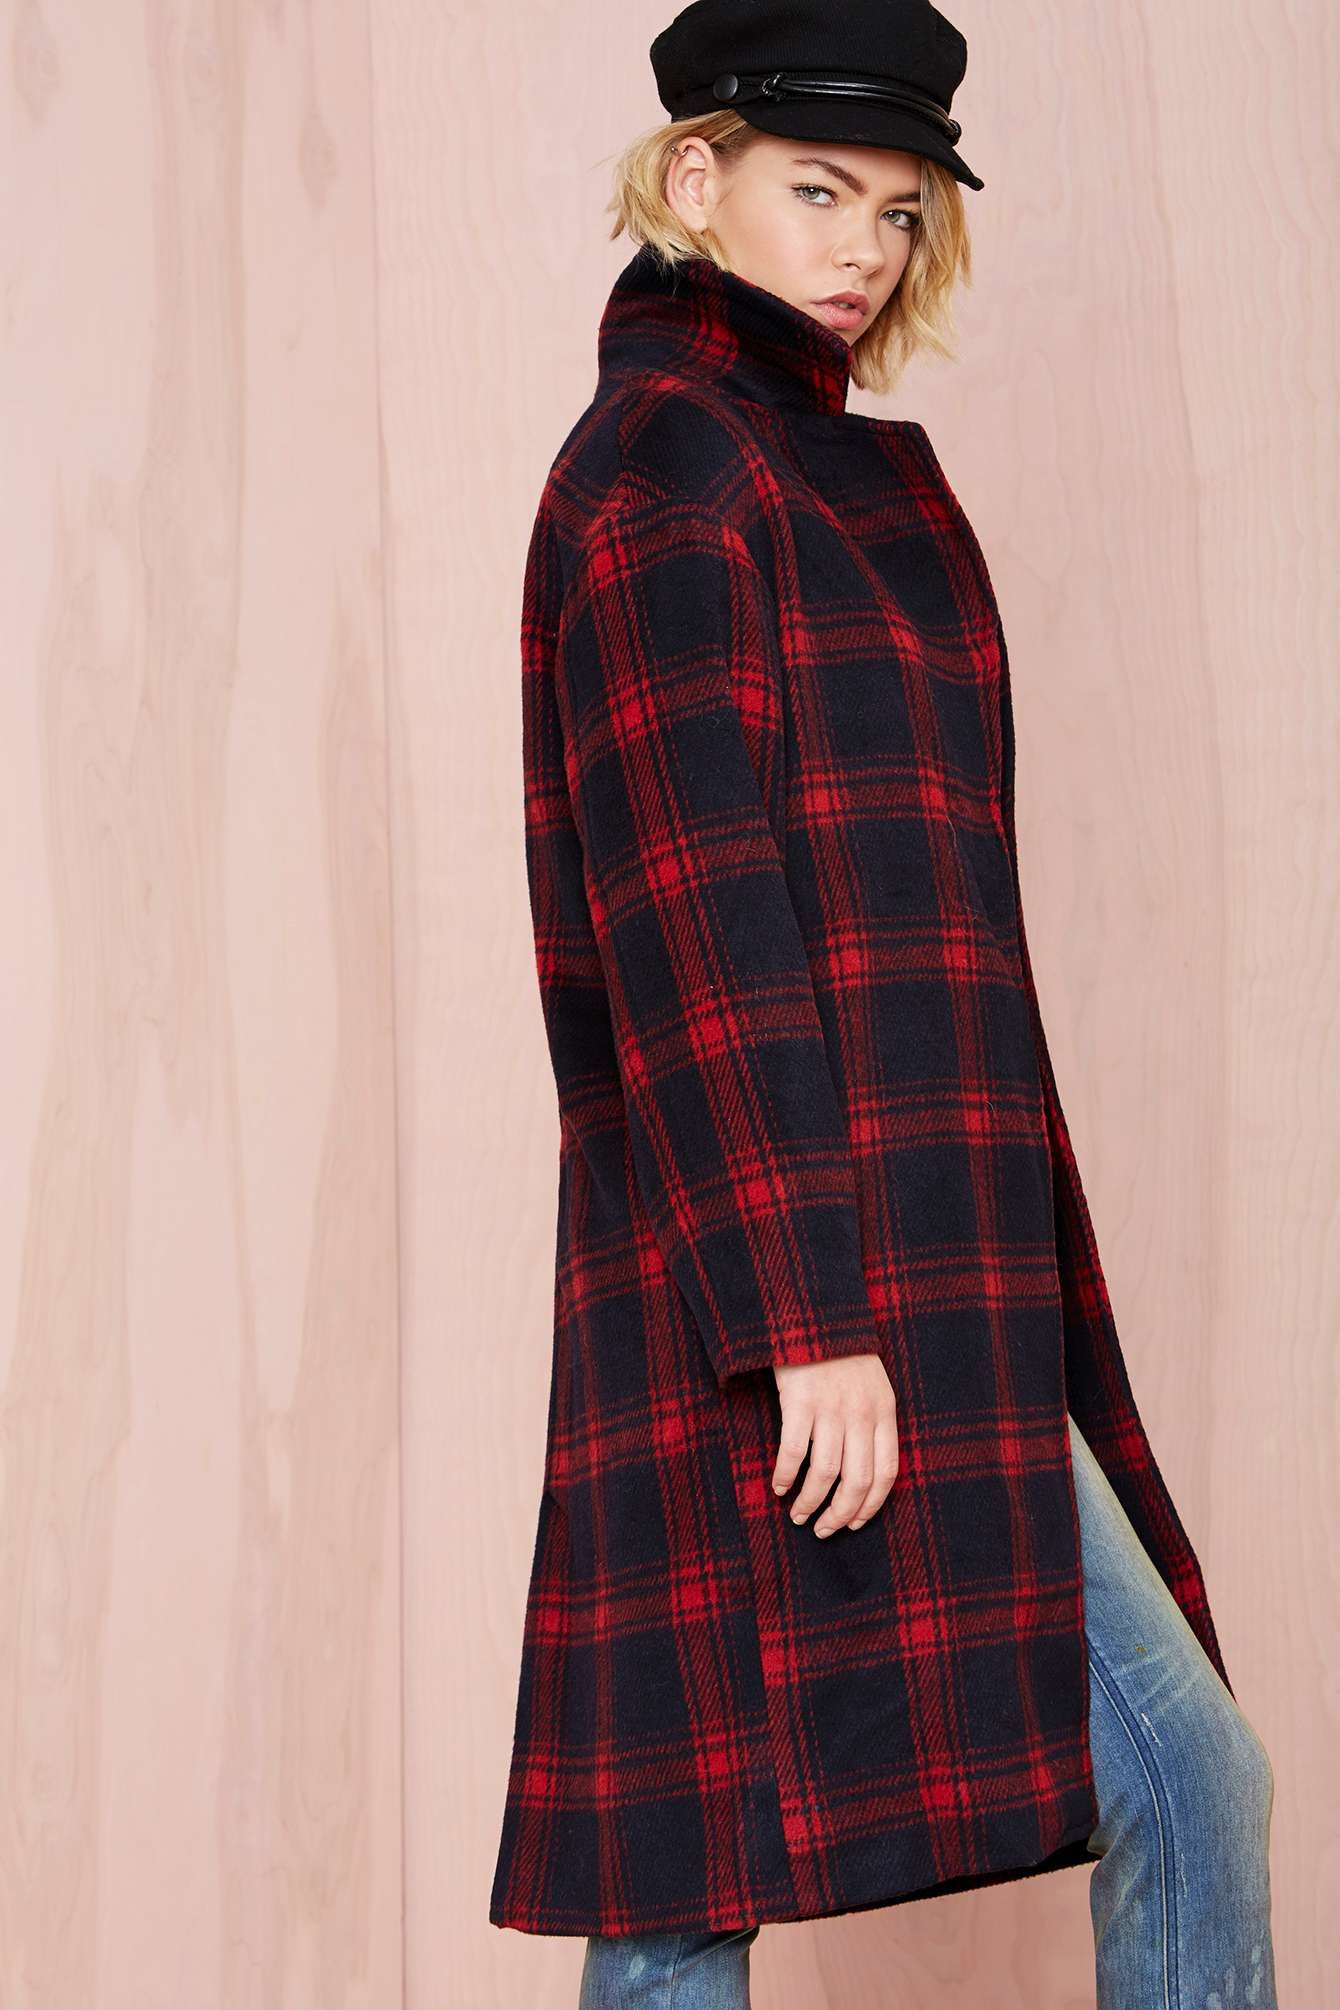 Dress with flannel around waist  Plaid Intentions Coat at Nasty Gal  N E E D  Pinterest  Chelsea